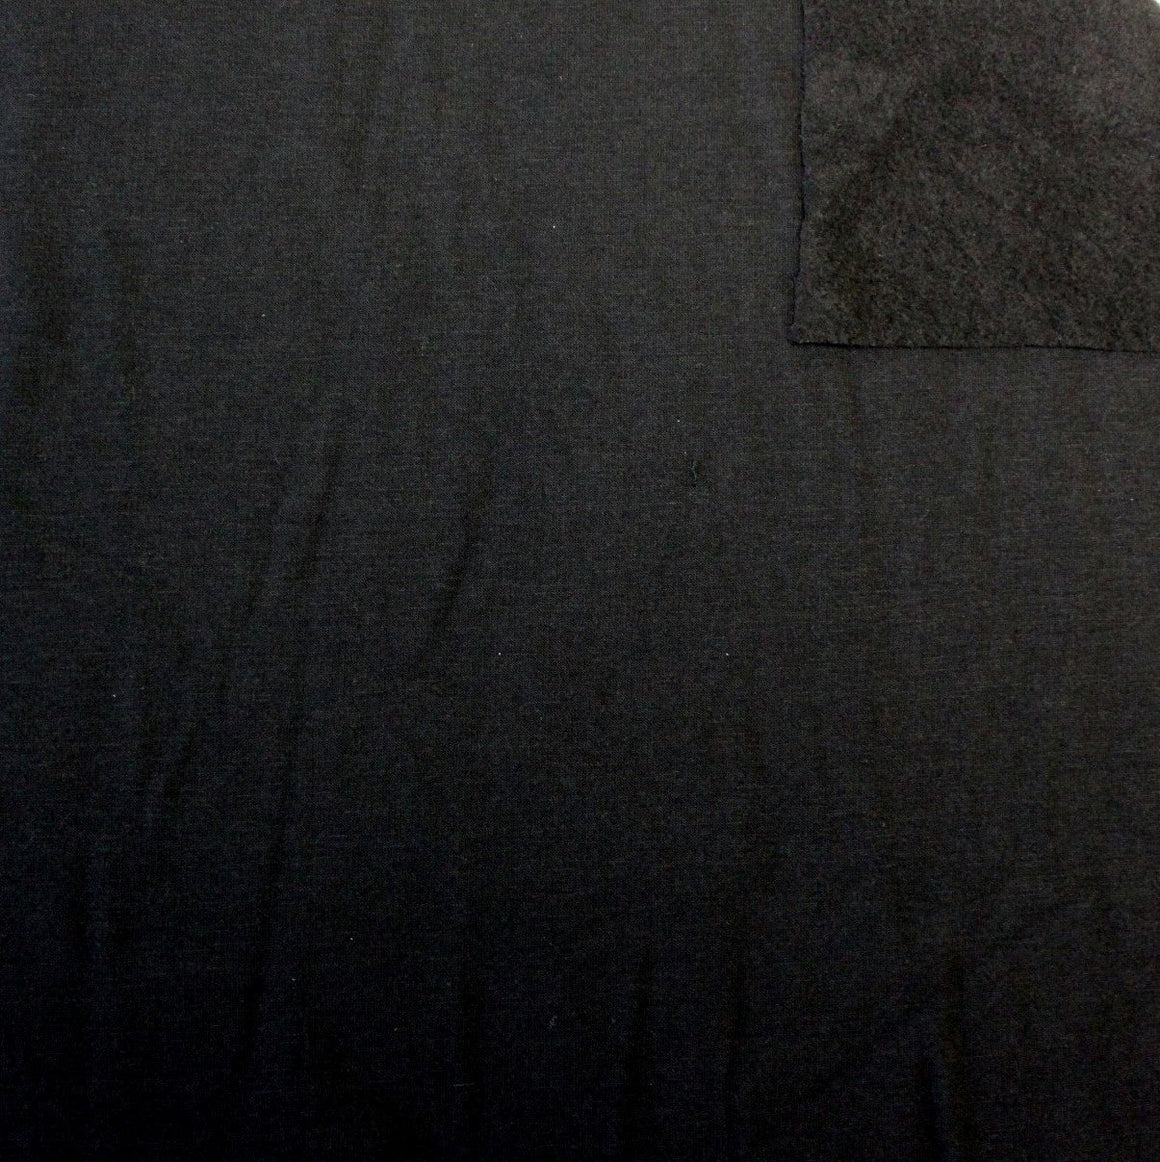 Solid Black French Terry Fleece Sweat Shirting Knit Fabric, 1 Yard